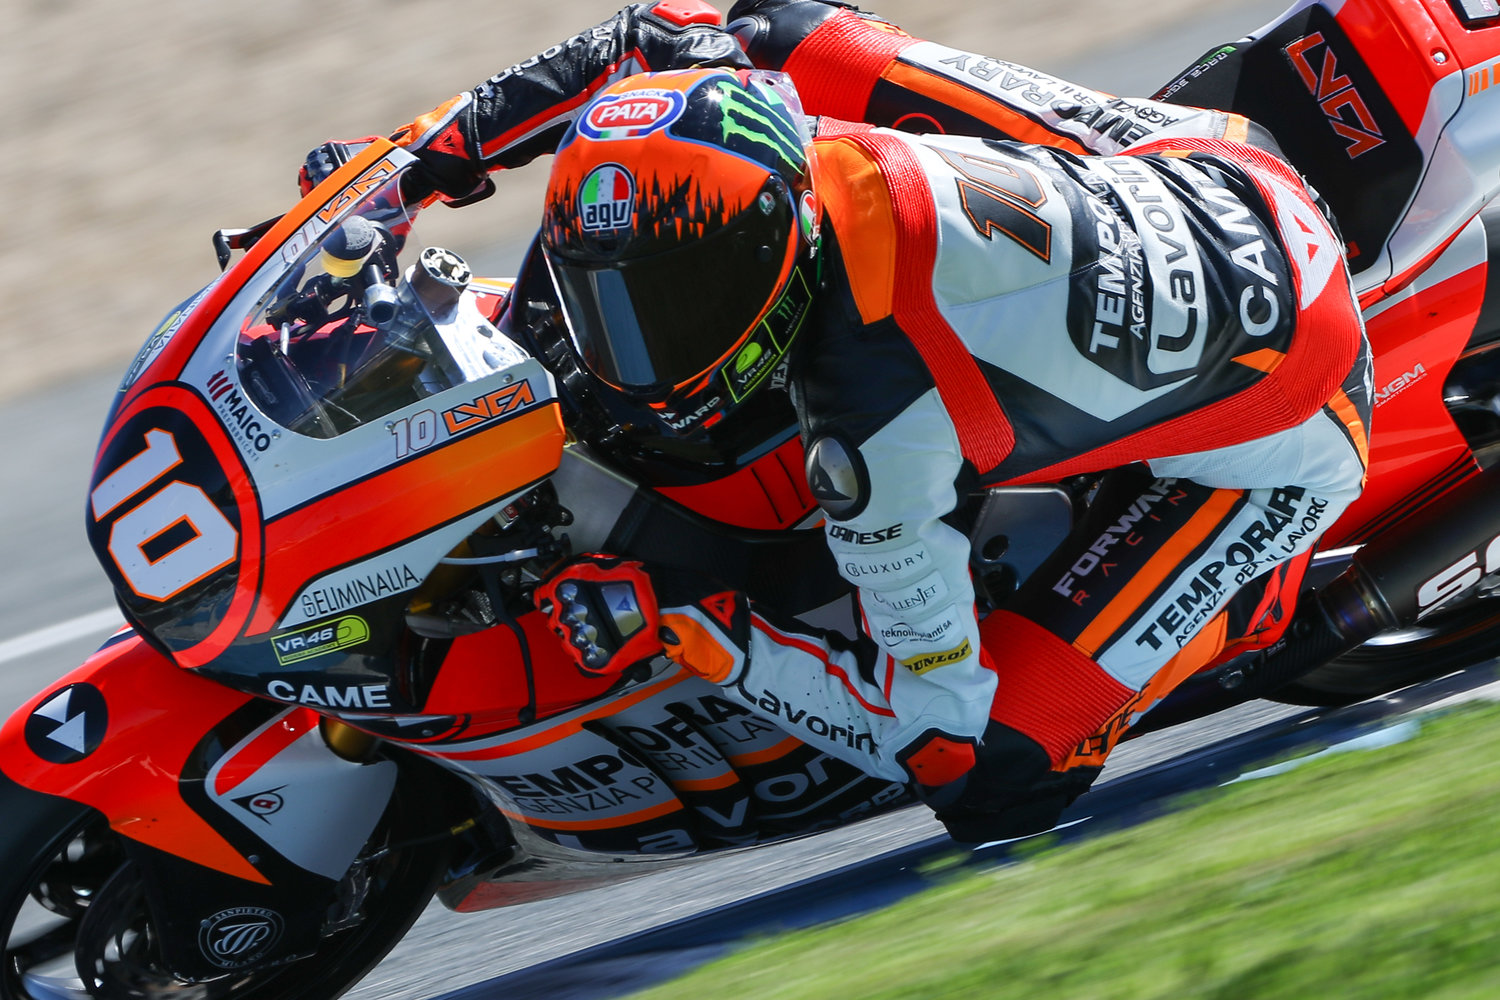 Marini progresses further during first official test in 2017